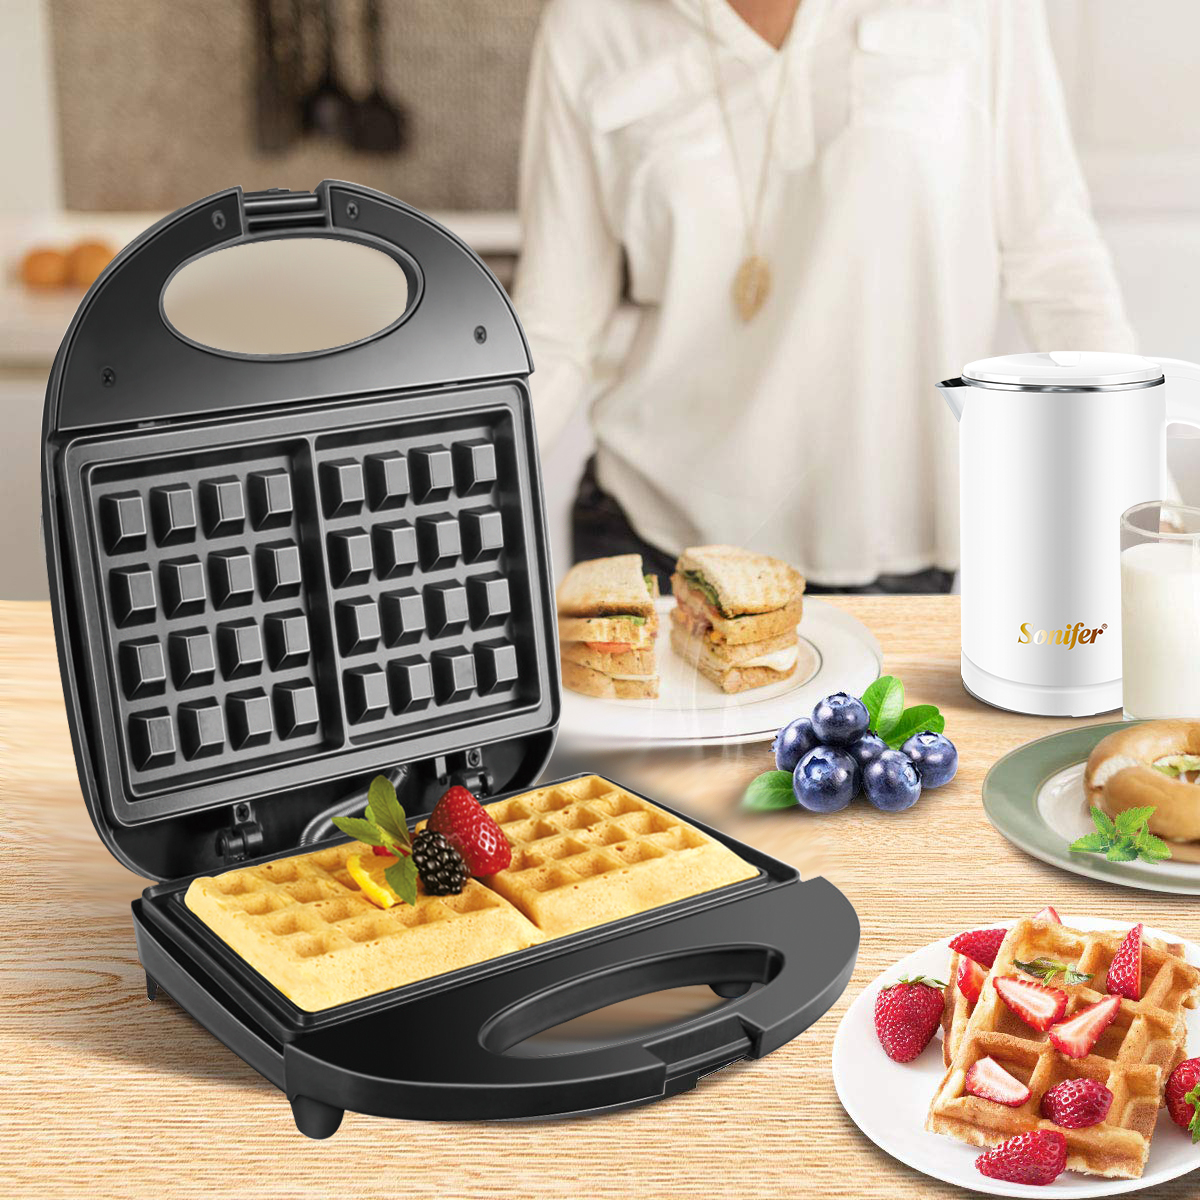 750W Electric Waffle Maker Machine With Double Sided Heating To Make Cake And Breakfast 4